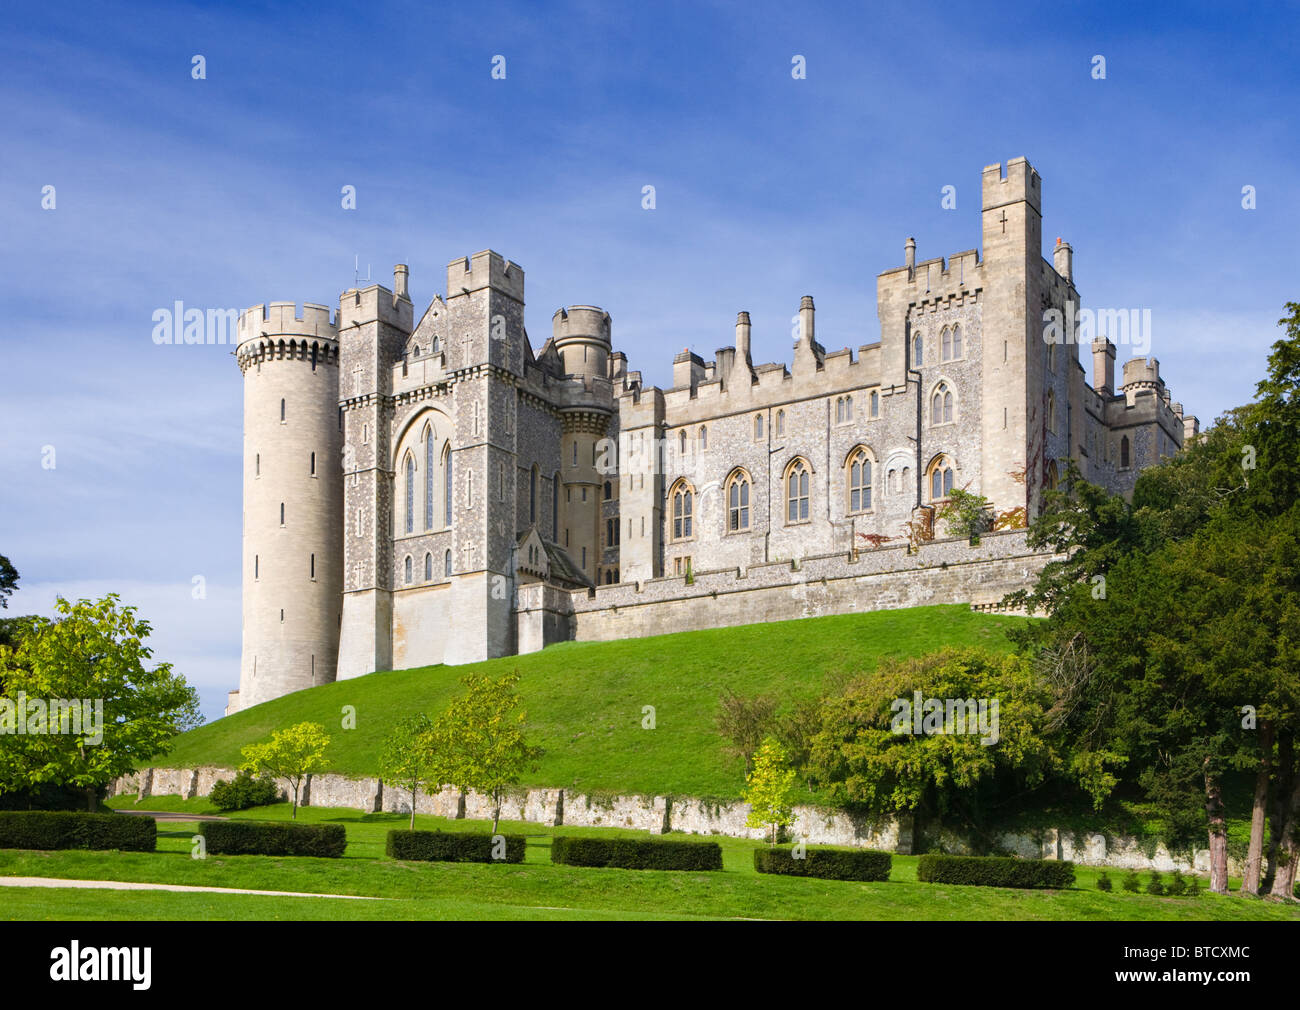 Arundel Castle, seat of the Duke of Norfolk, West Sussex, UK - Stock Image